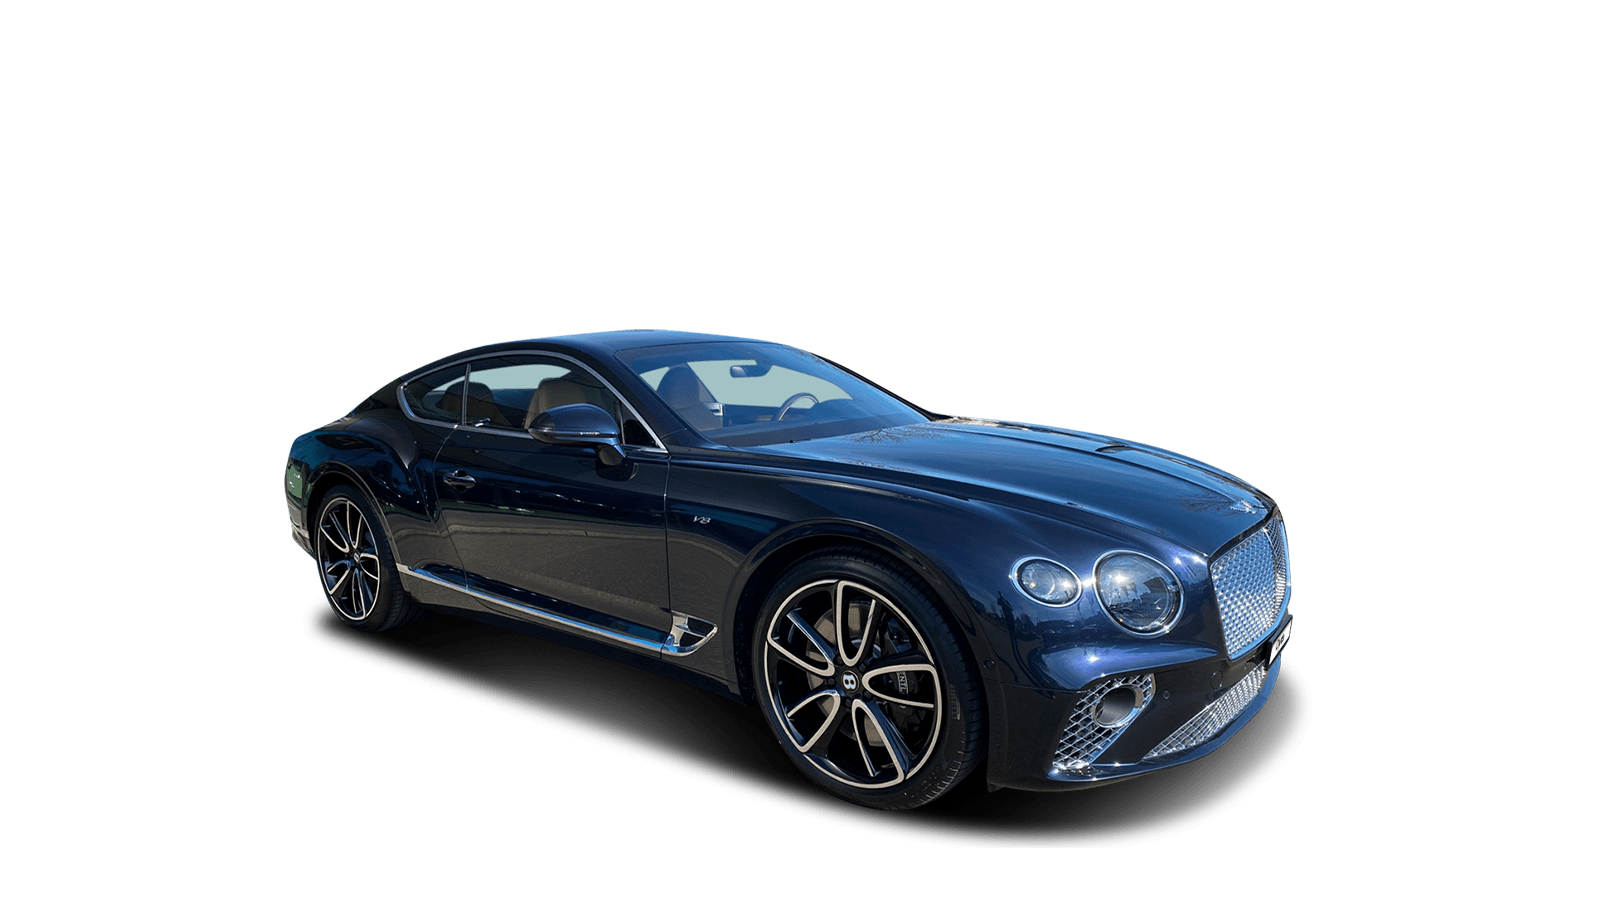 Bentley Continental GT V8 Blue front - Clyde car subscription